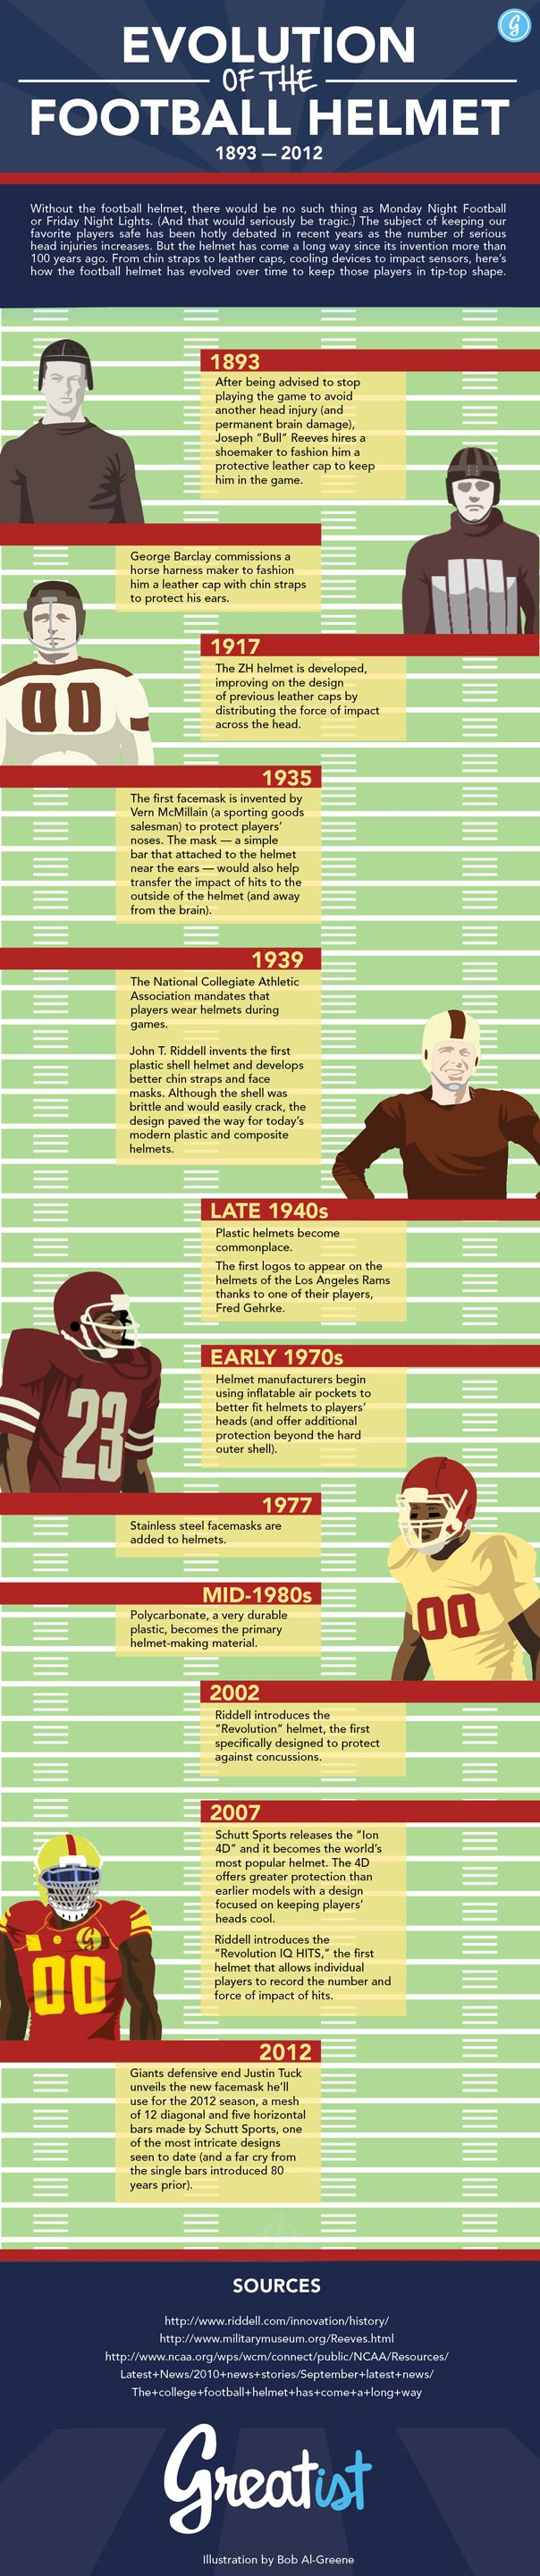 With the NFL season in full swing, we took an in-depth look at the technology that helps keep our favorite players safe. Check out our infographic detailing the evolution of the football helmet, from humble beginnings to high-tech.